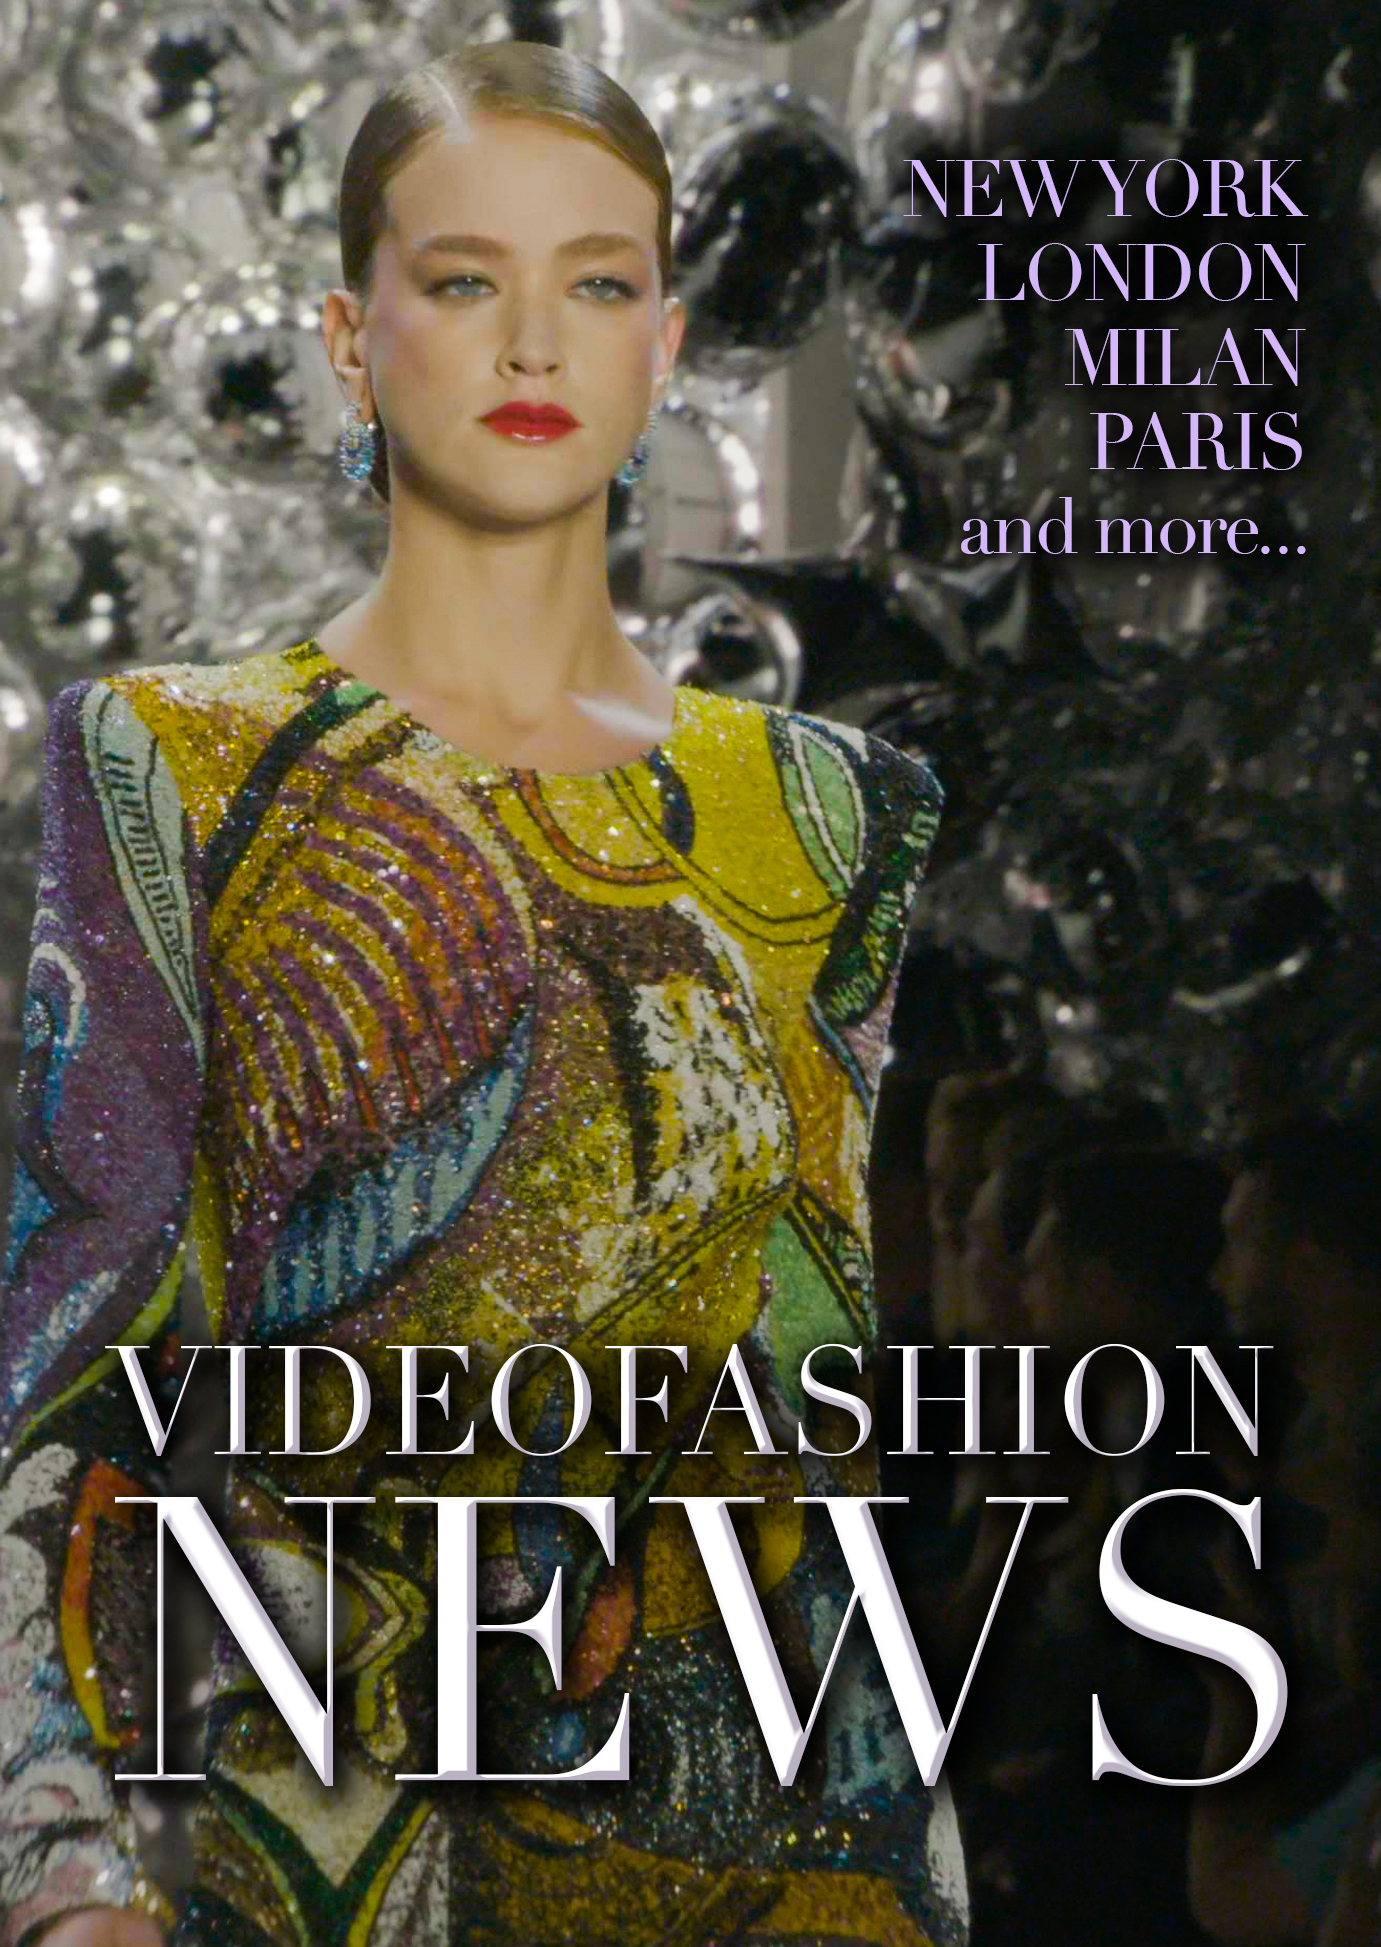 Videofashion News Poster